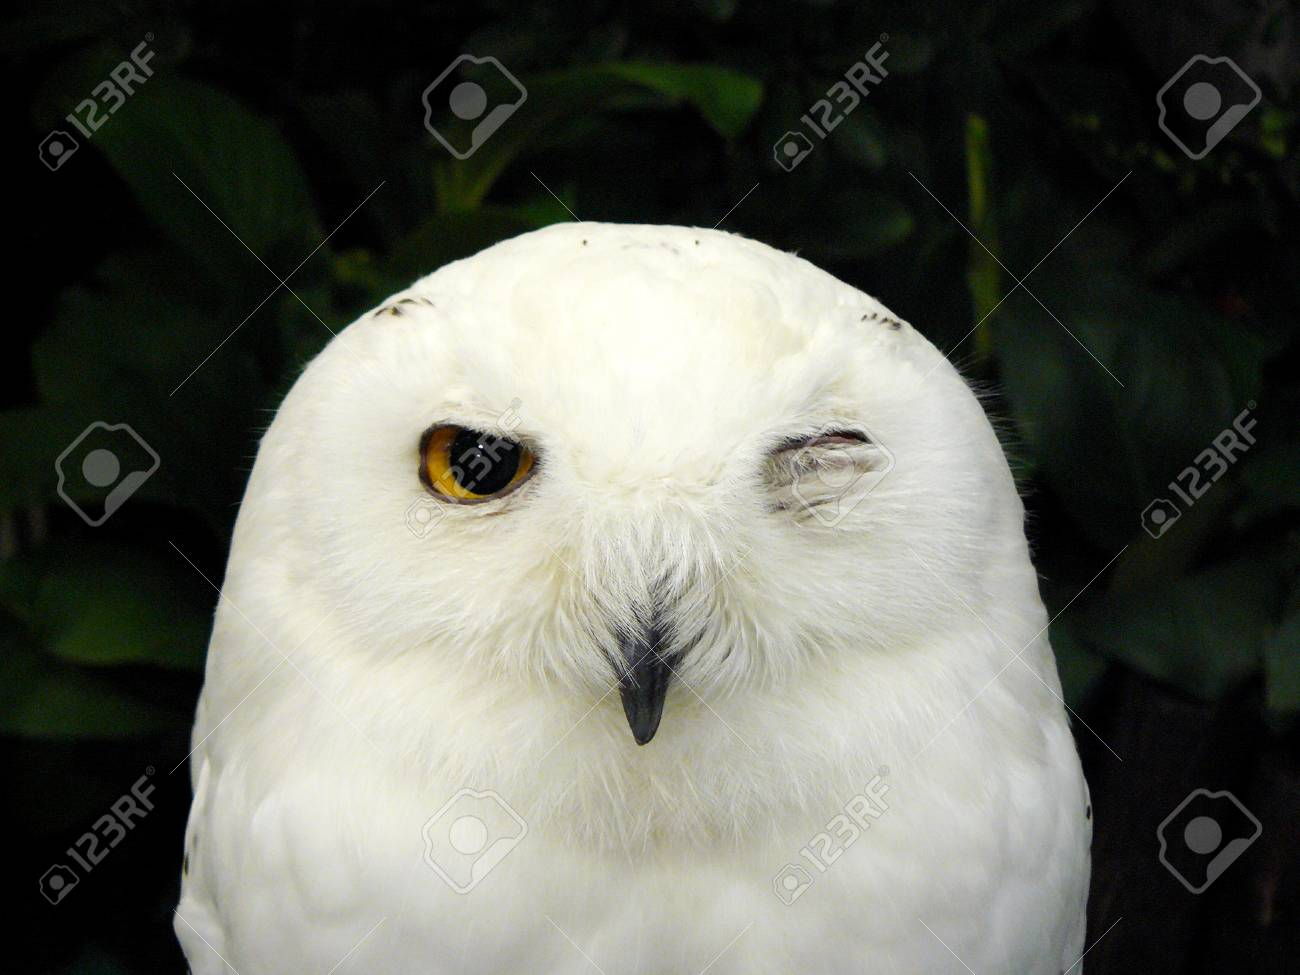 Image of: Baby Owl Close Up Face Of Cute Snowy Owl bubo Scandiacus It Is One Of Largest 123rfcom Close Up Face Of Cute Snowy Owl bubo Scandiacus It Is One Of